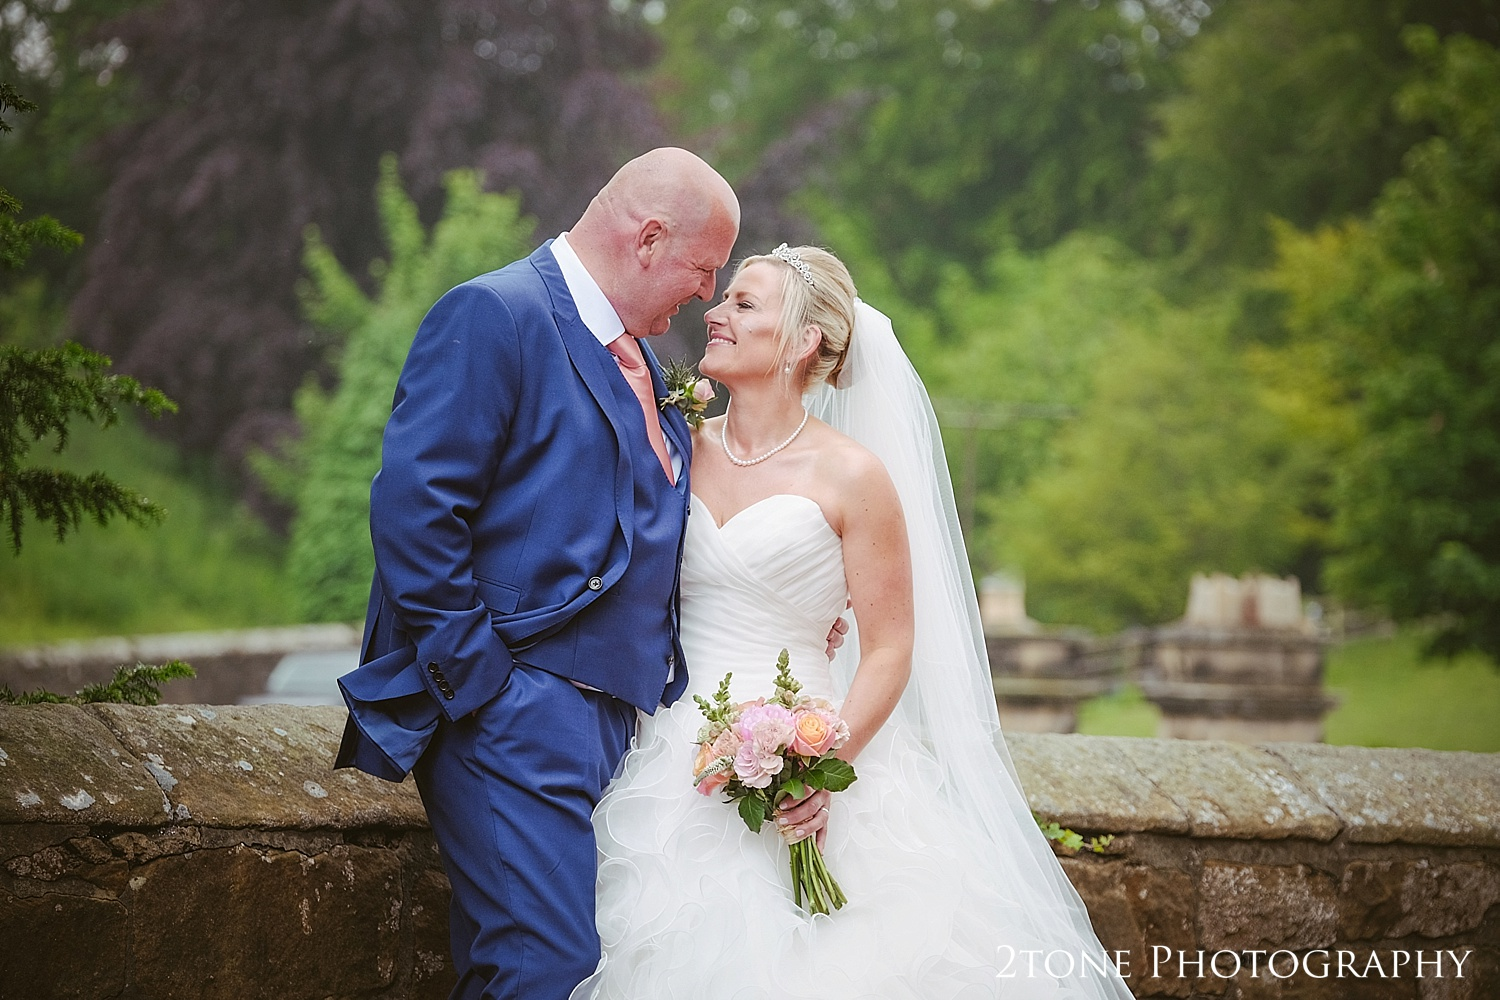 Wedding photography by Newcastle and Durham based wedding photographers www.2tonephotography.co.uk